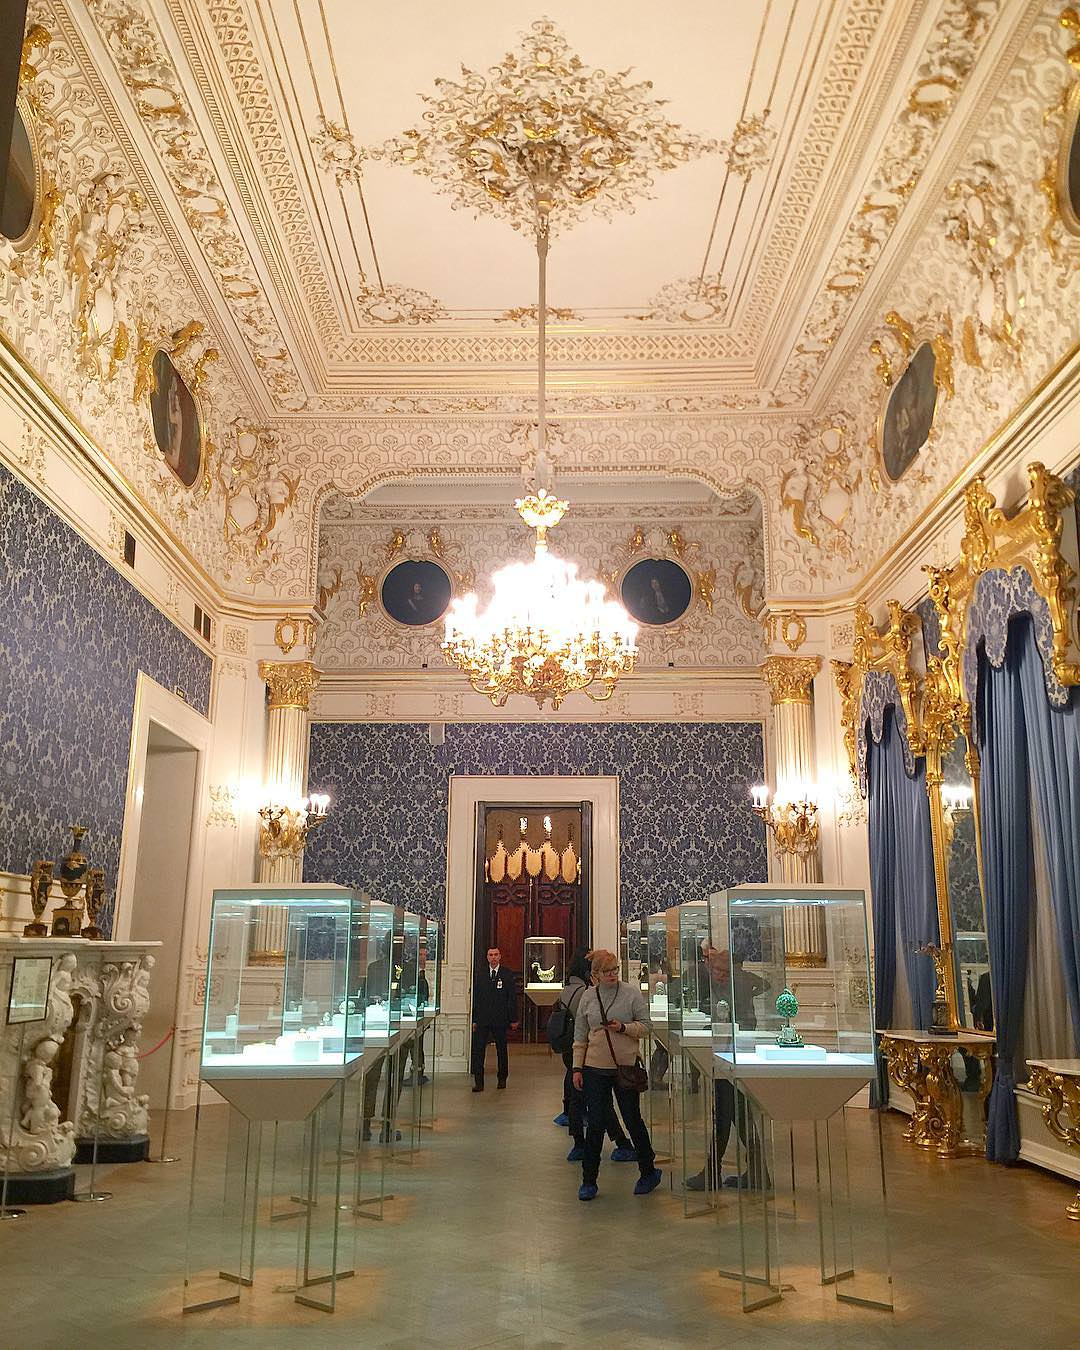 MUSEE DE FABERGE